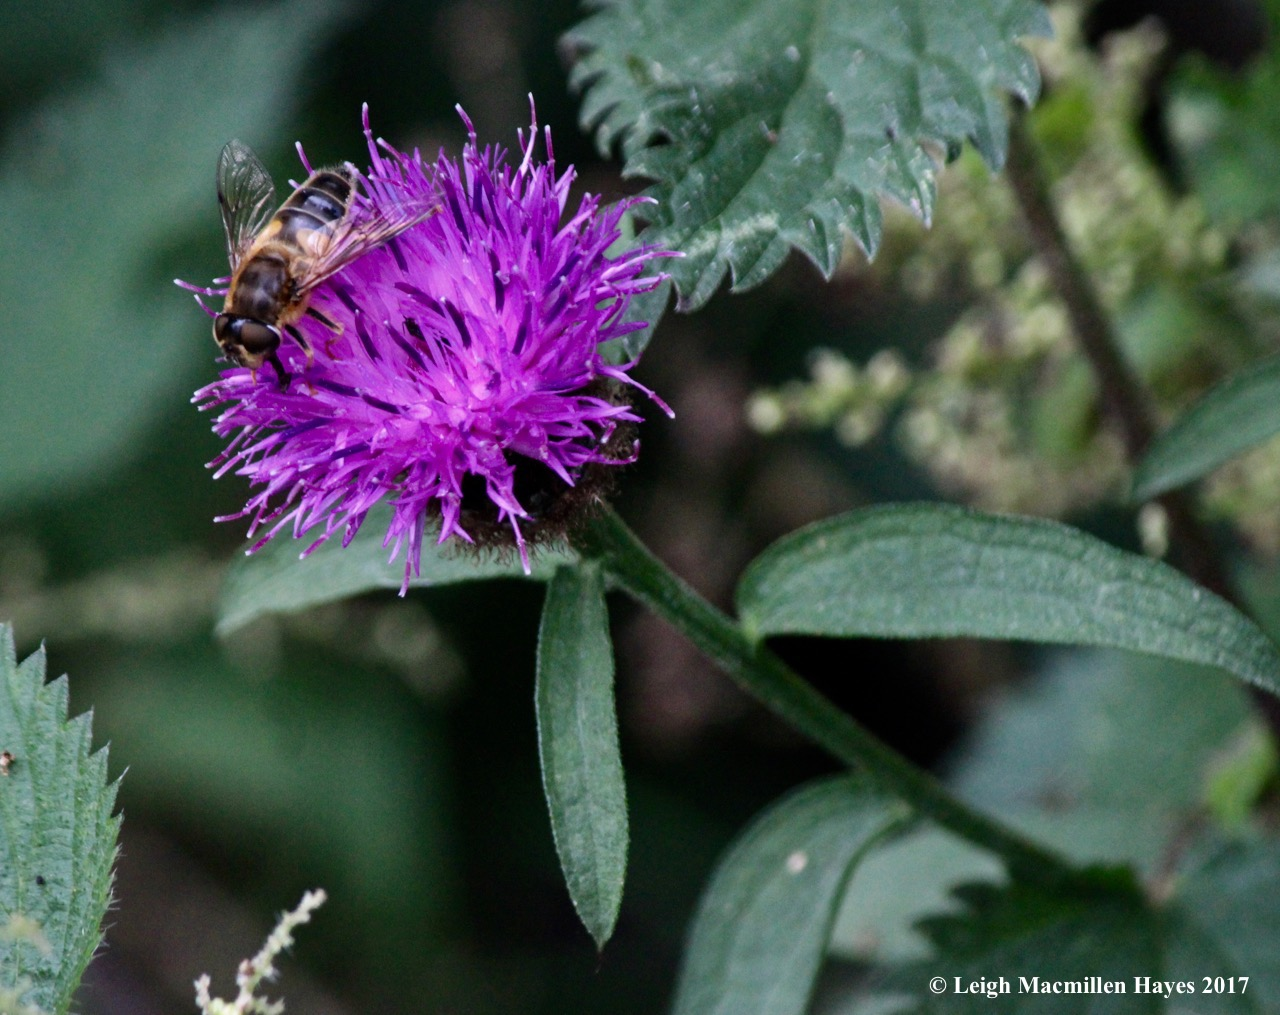 s-thistle and bee, Days 1 and 2